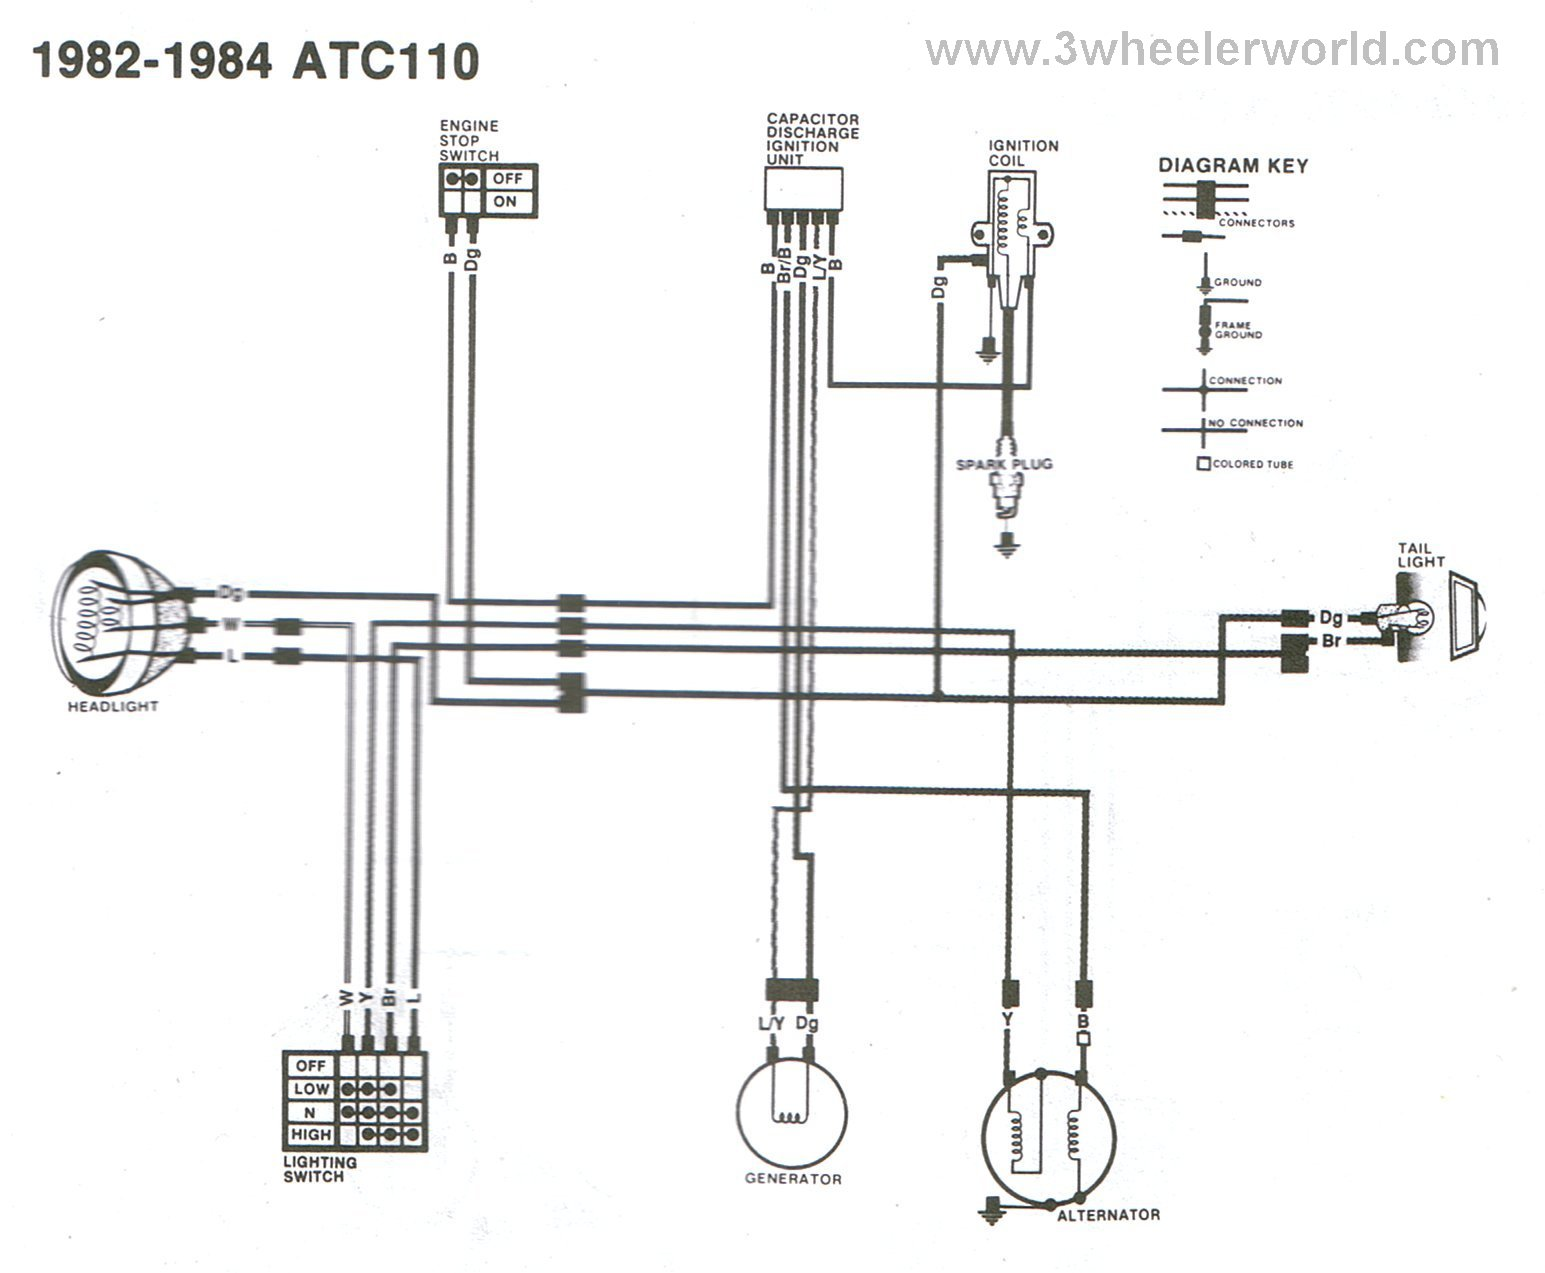 3 Wheeler World Tech Help Honda Wiring Diagrams 74 Vw Automotive Get Free Image About Diagram Atc110 1982 Thru 1984